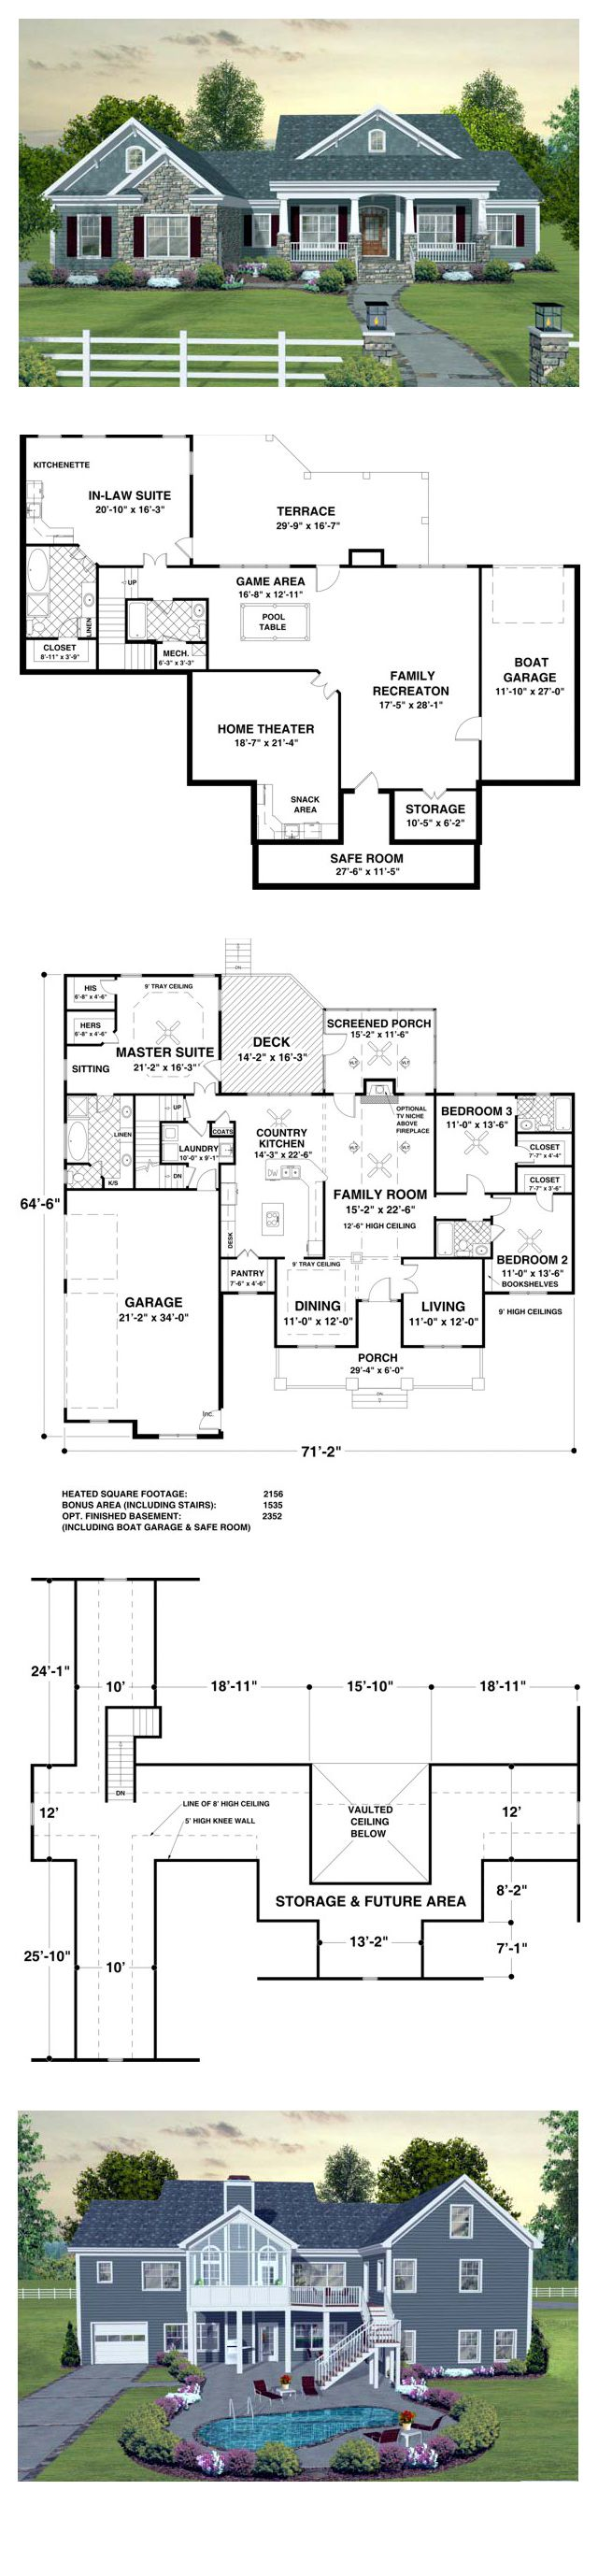 Craftsman House Plan 93483   Total Living Area: 2156 sq. ft., 3 bedrooms & 3 bathrooms. A three car garage, screened porch, spacious country kitchen, an optional 1,535 sq. ft. bonus area and an optional 2,352 sq. ft. basement make this home irresistible! #houseplan #craftsmanstyle